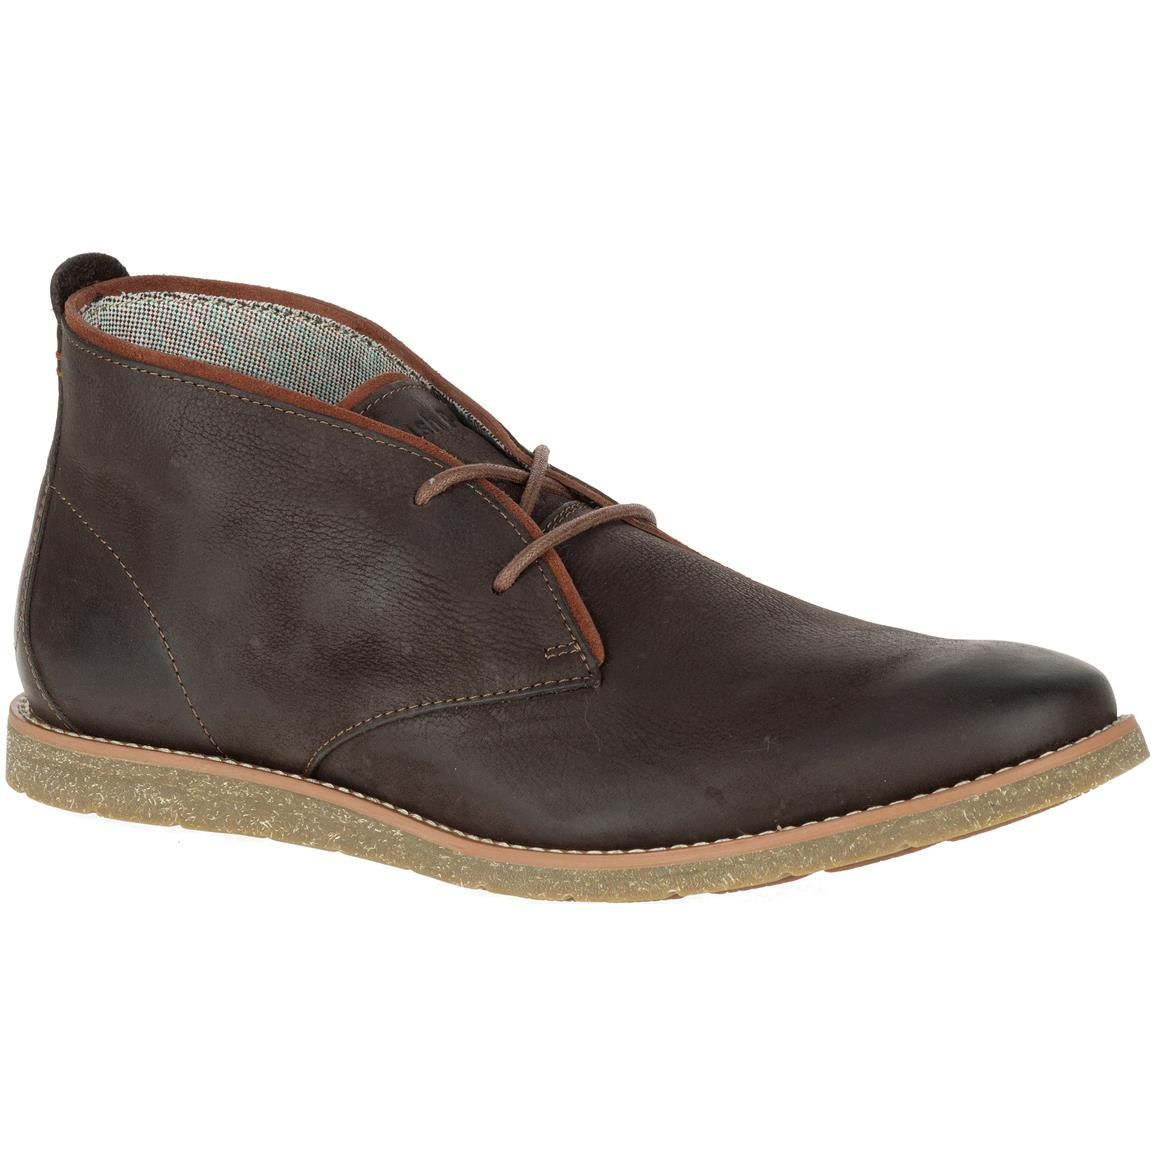 Hush Puppies Men's  Roland Jester Chukka Boots, Dark Brown